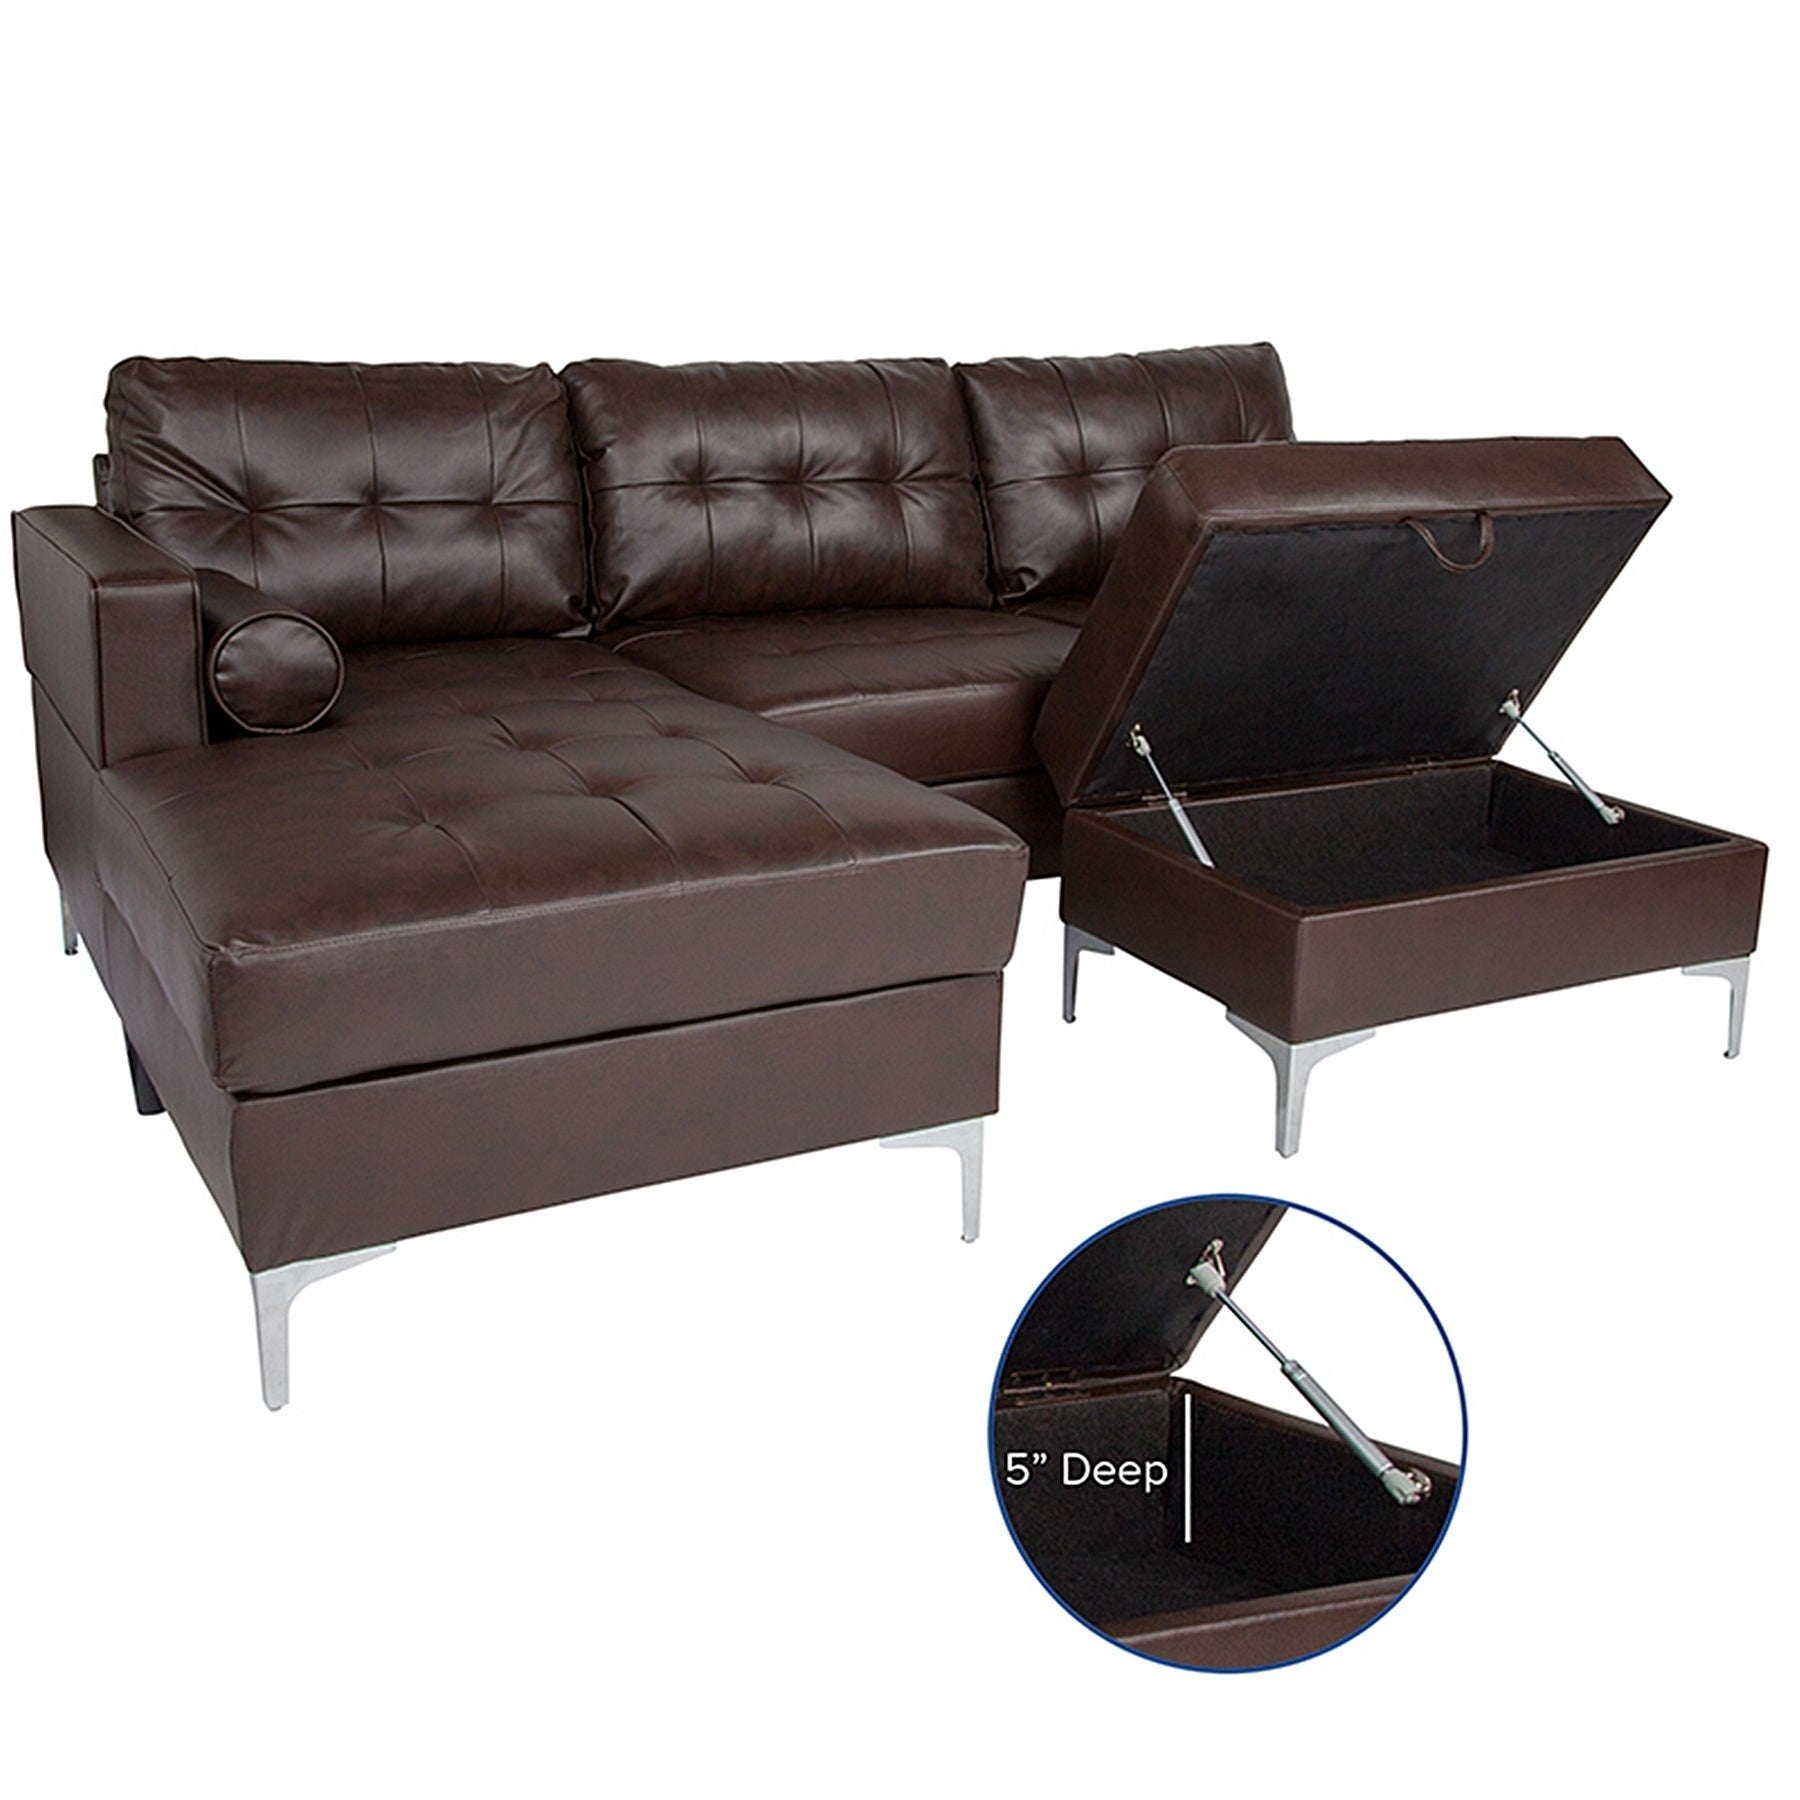 Shop Bellmore 3-Piece Brown Leather Sectional Sofa with Left Facing ...